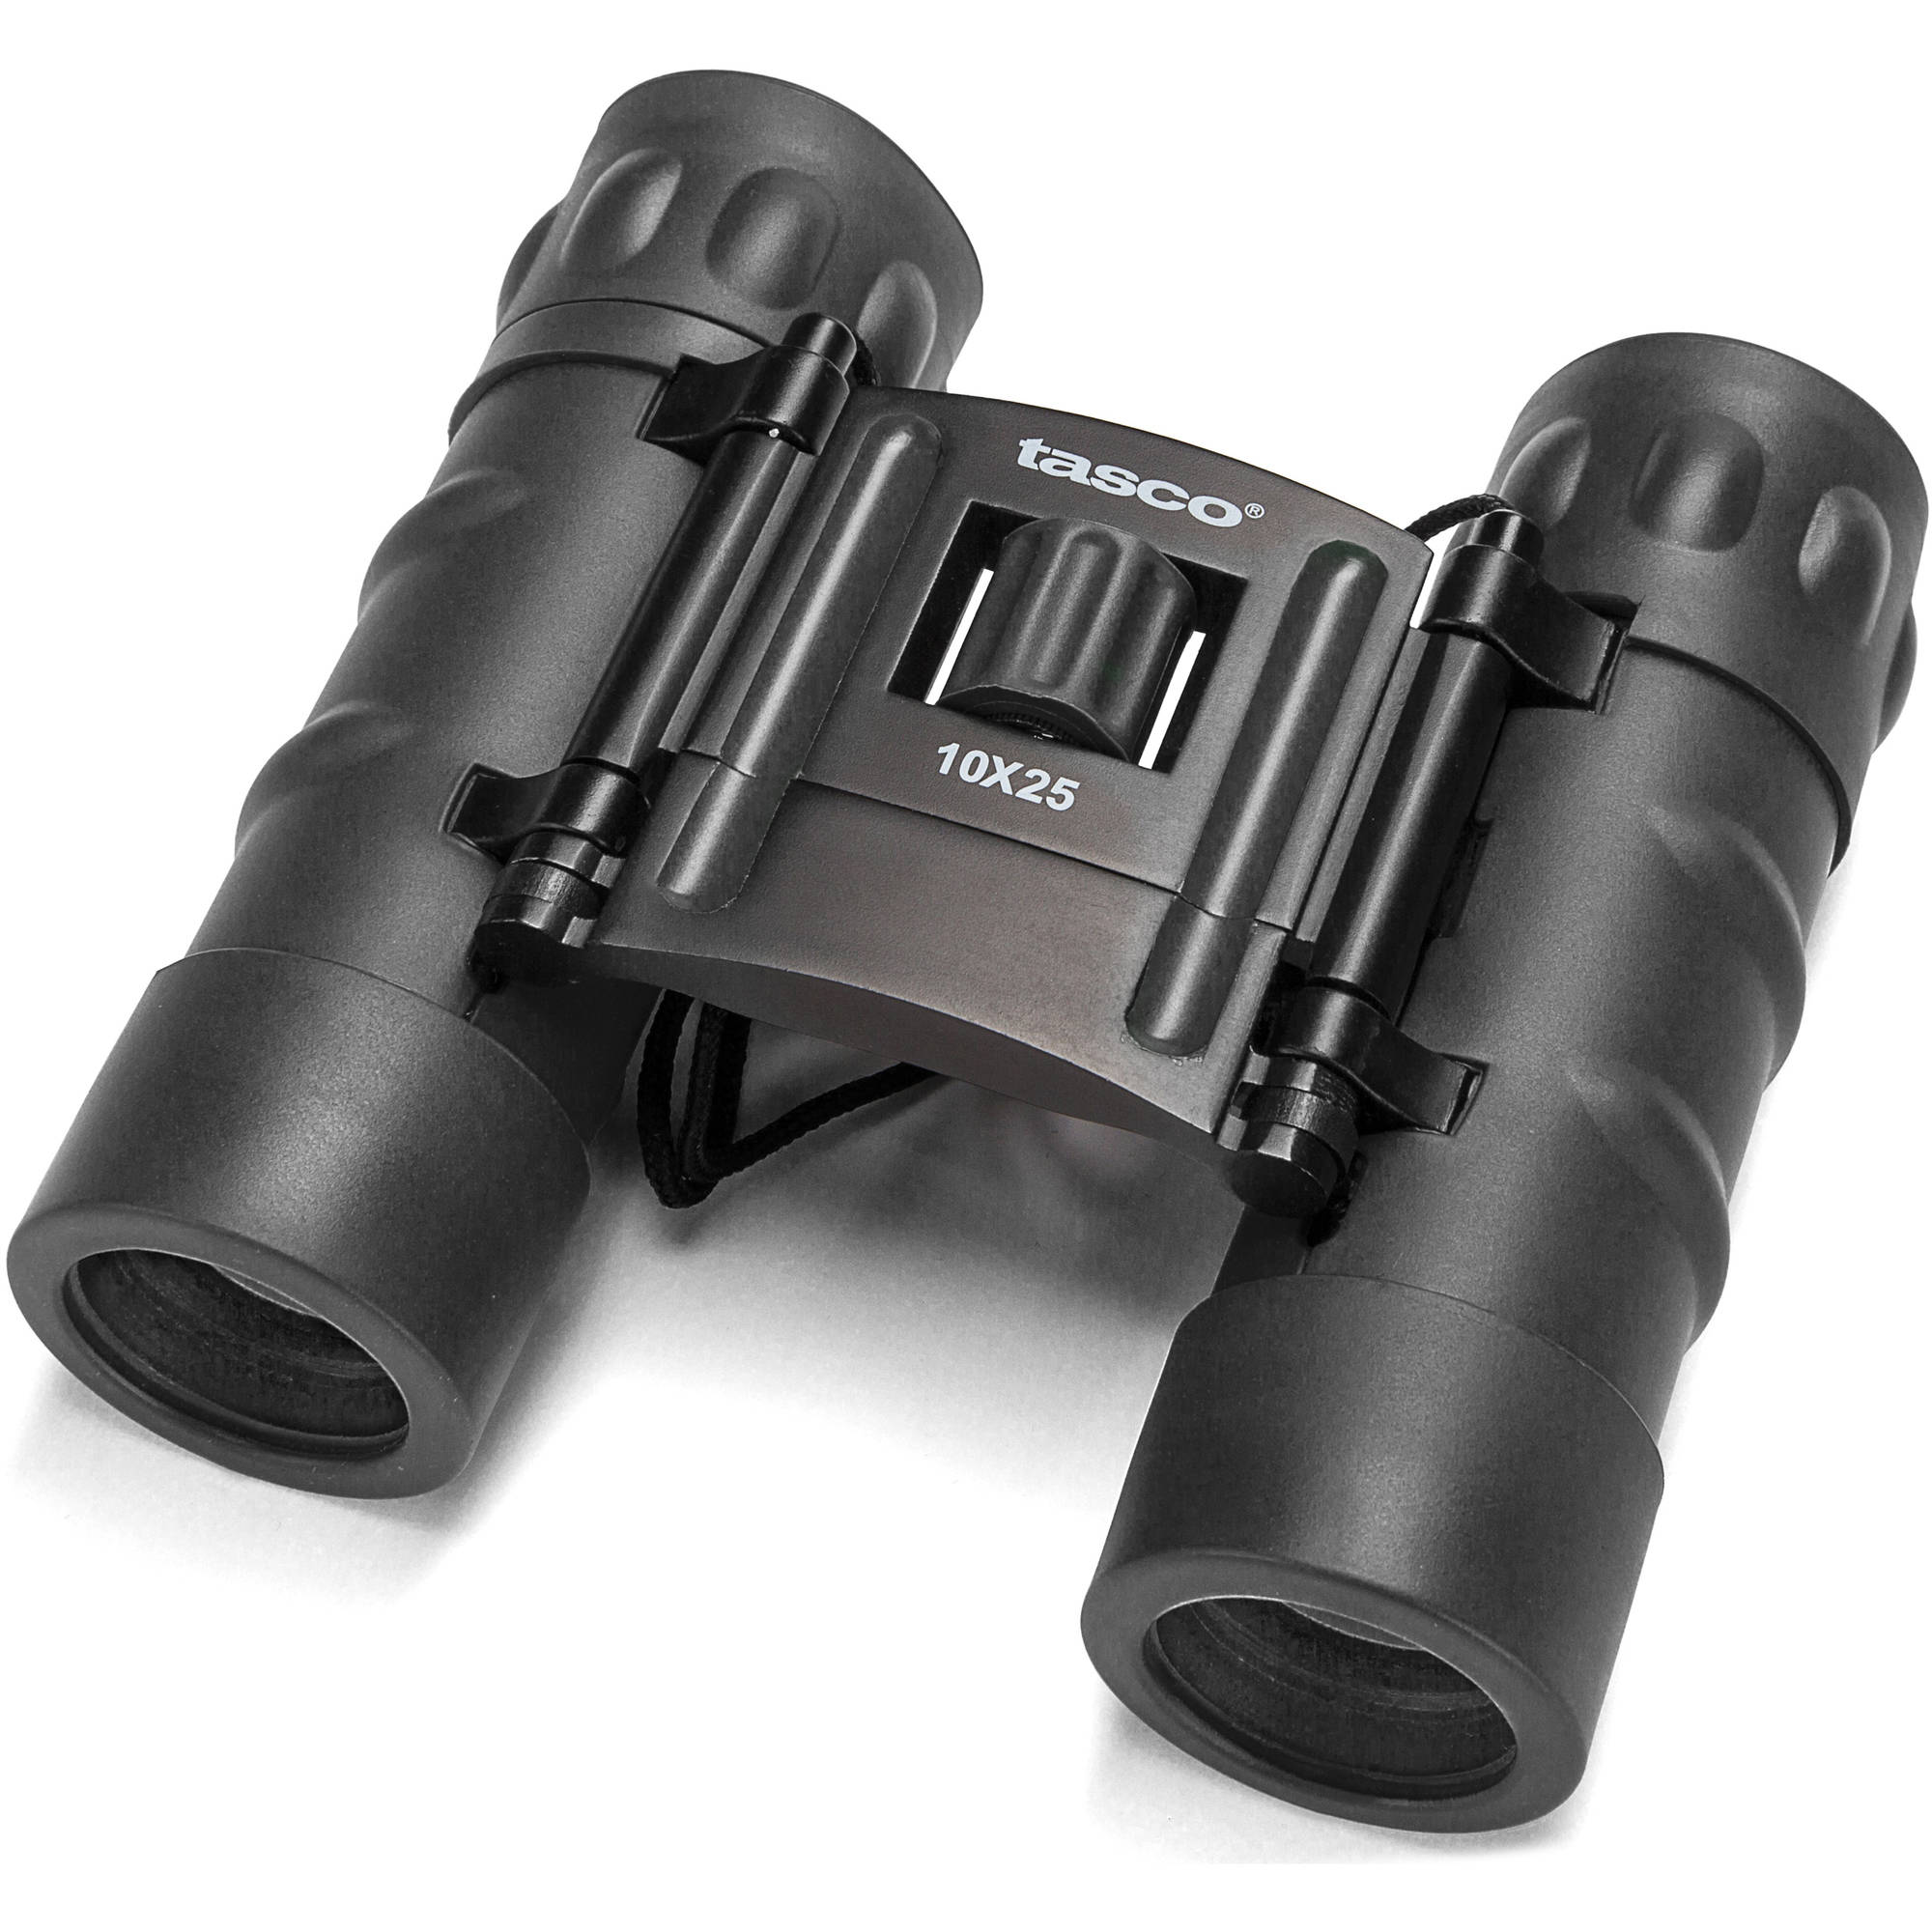 Tasco10x25 Essentials Compact Binocular